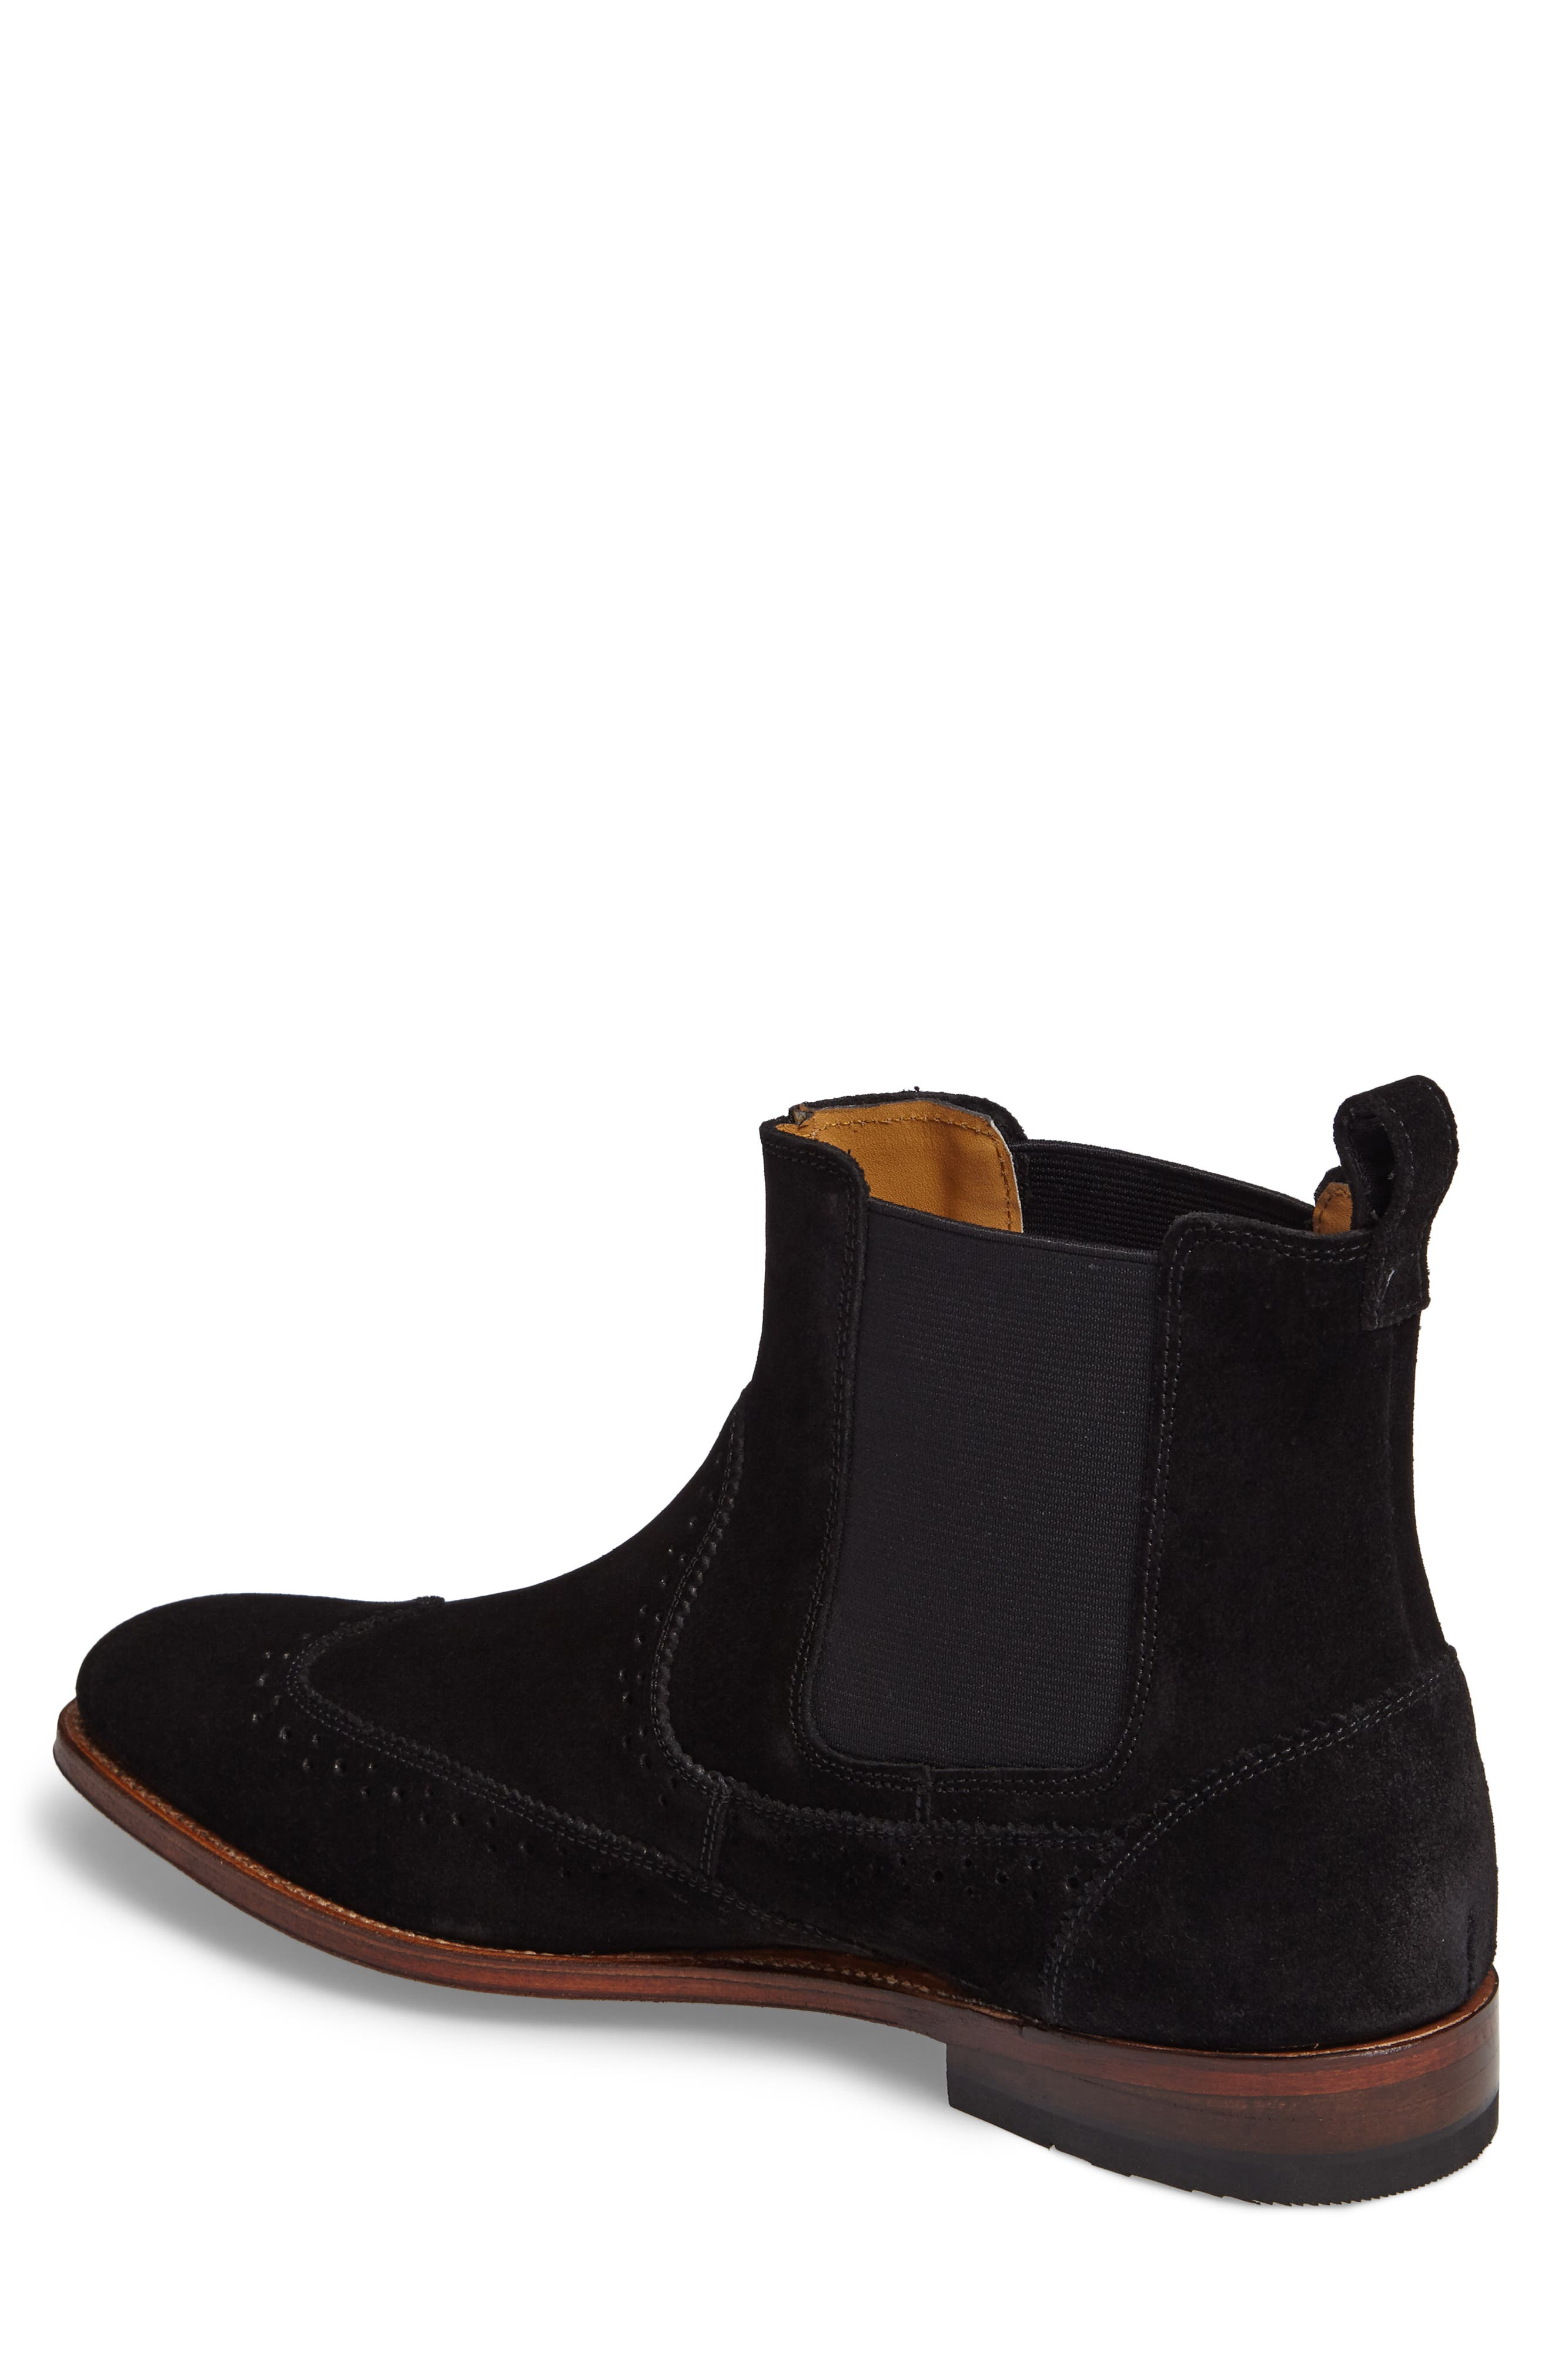 STACY ADAMS, Madison II Wingtip Chelsea Boot, Alternate thumbnail 2, color, BLACK SUEDE